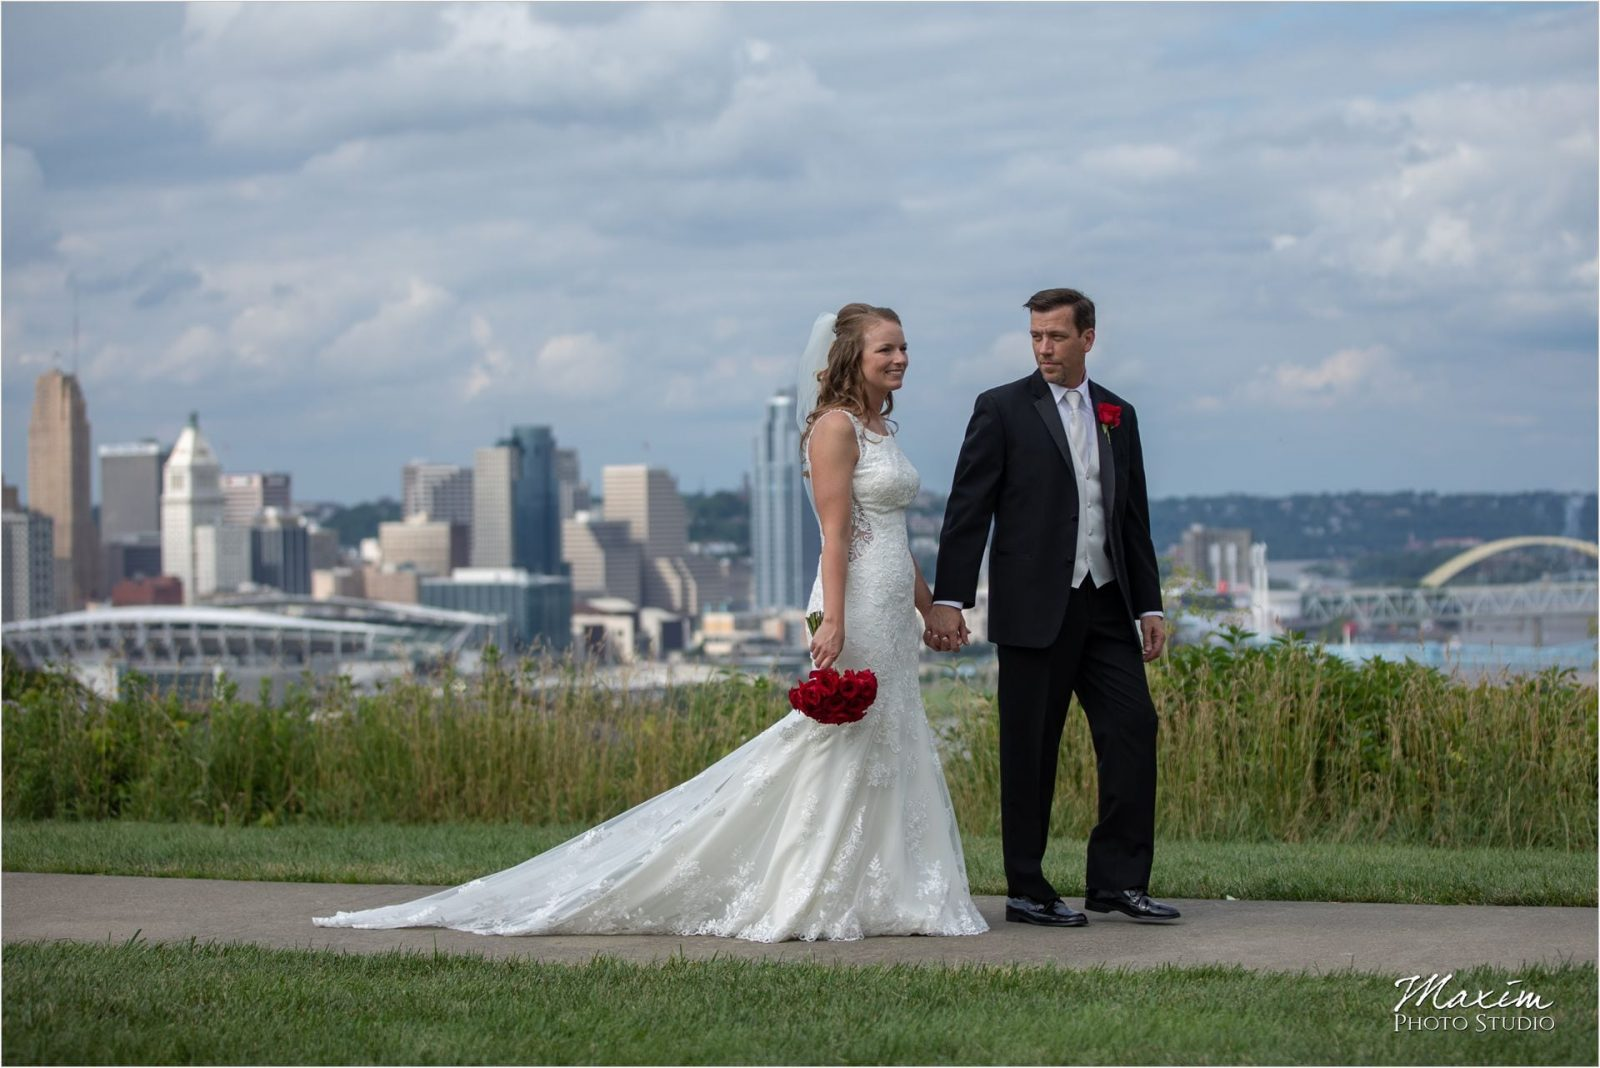 Devou Park Cincinnati downtown overlook bride groom